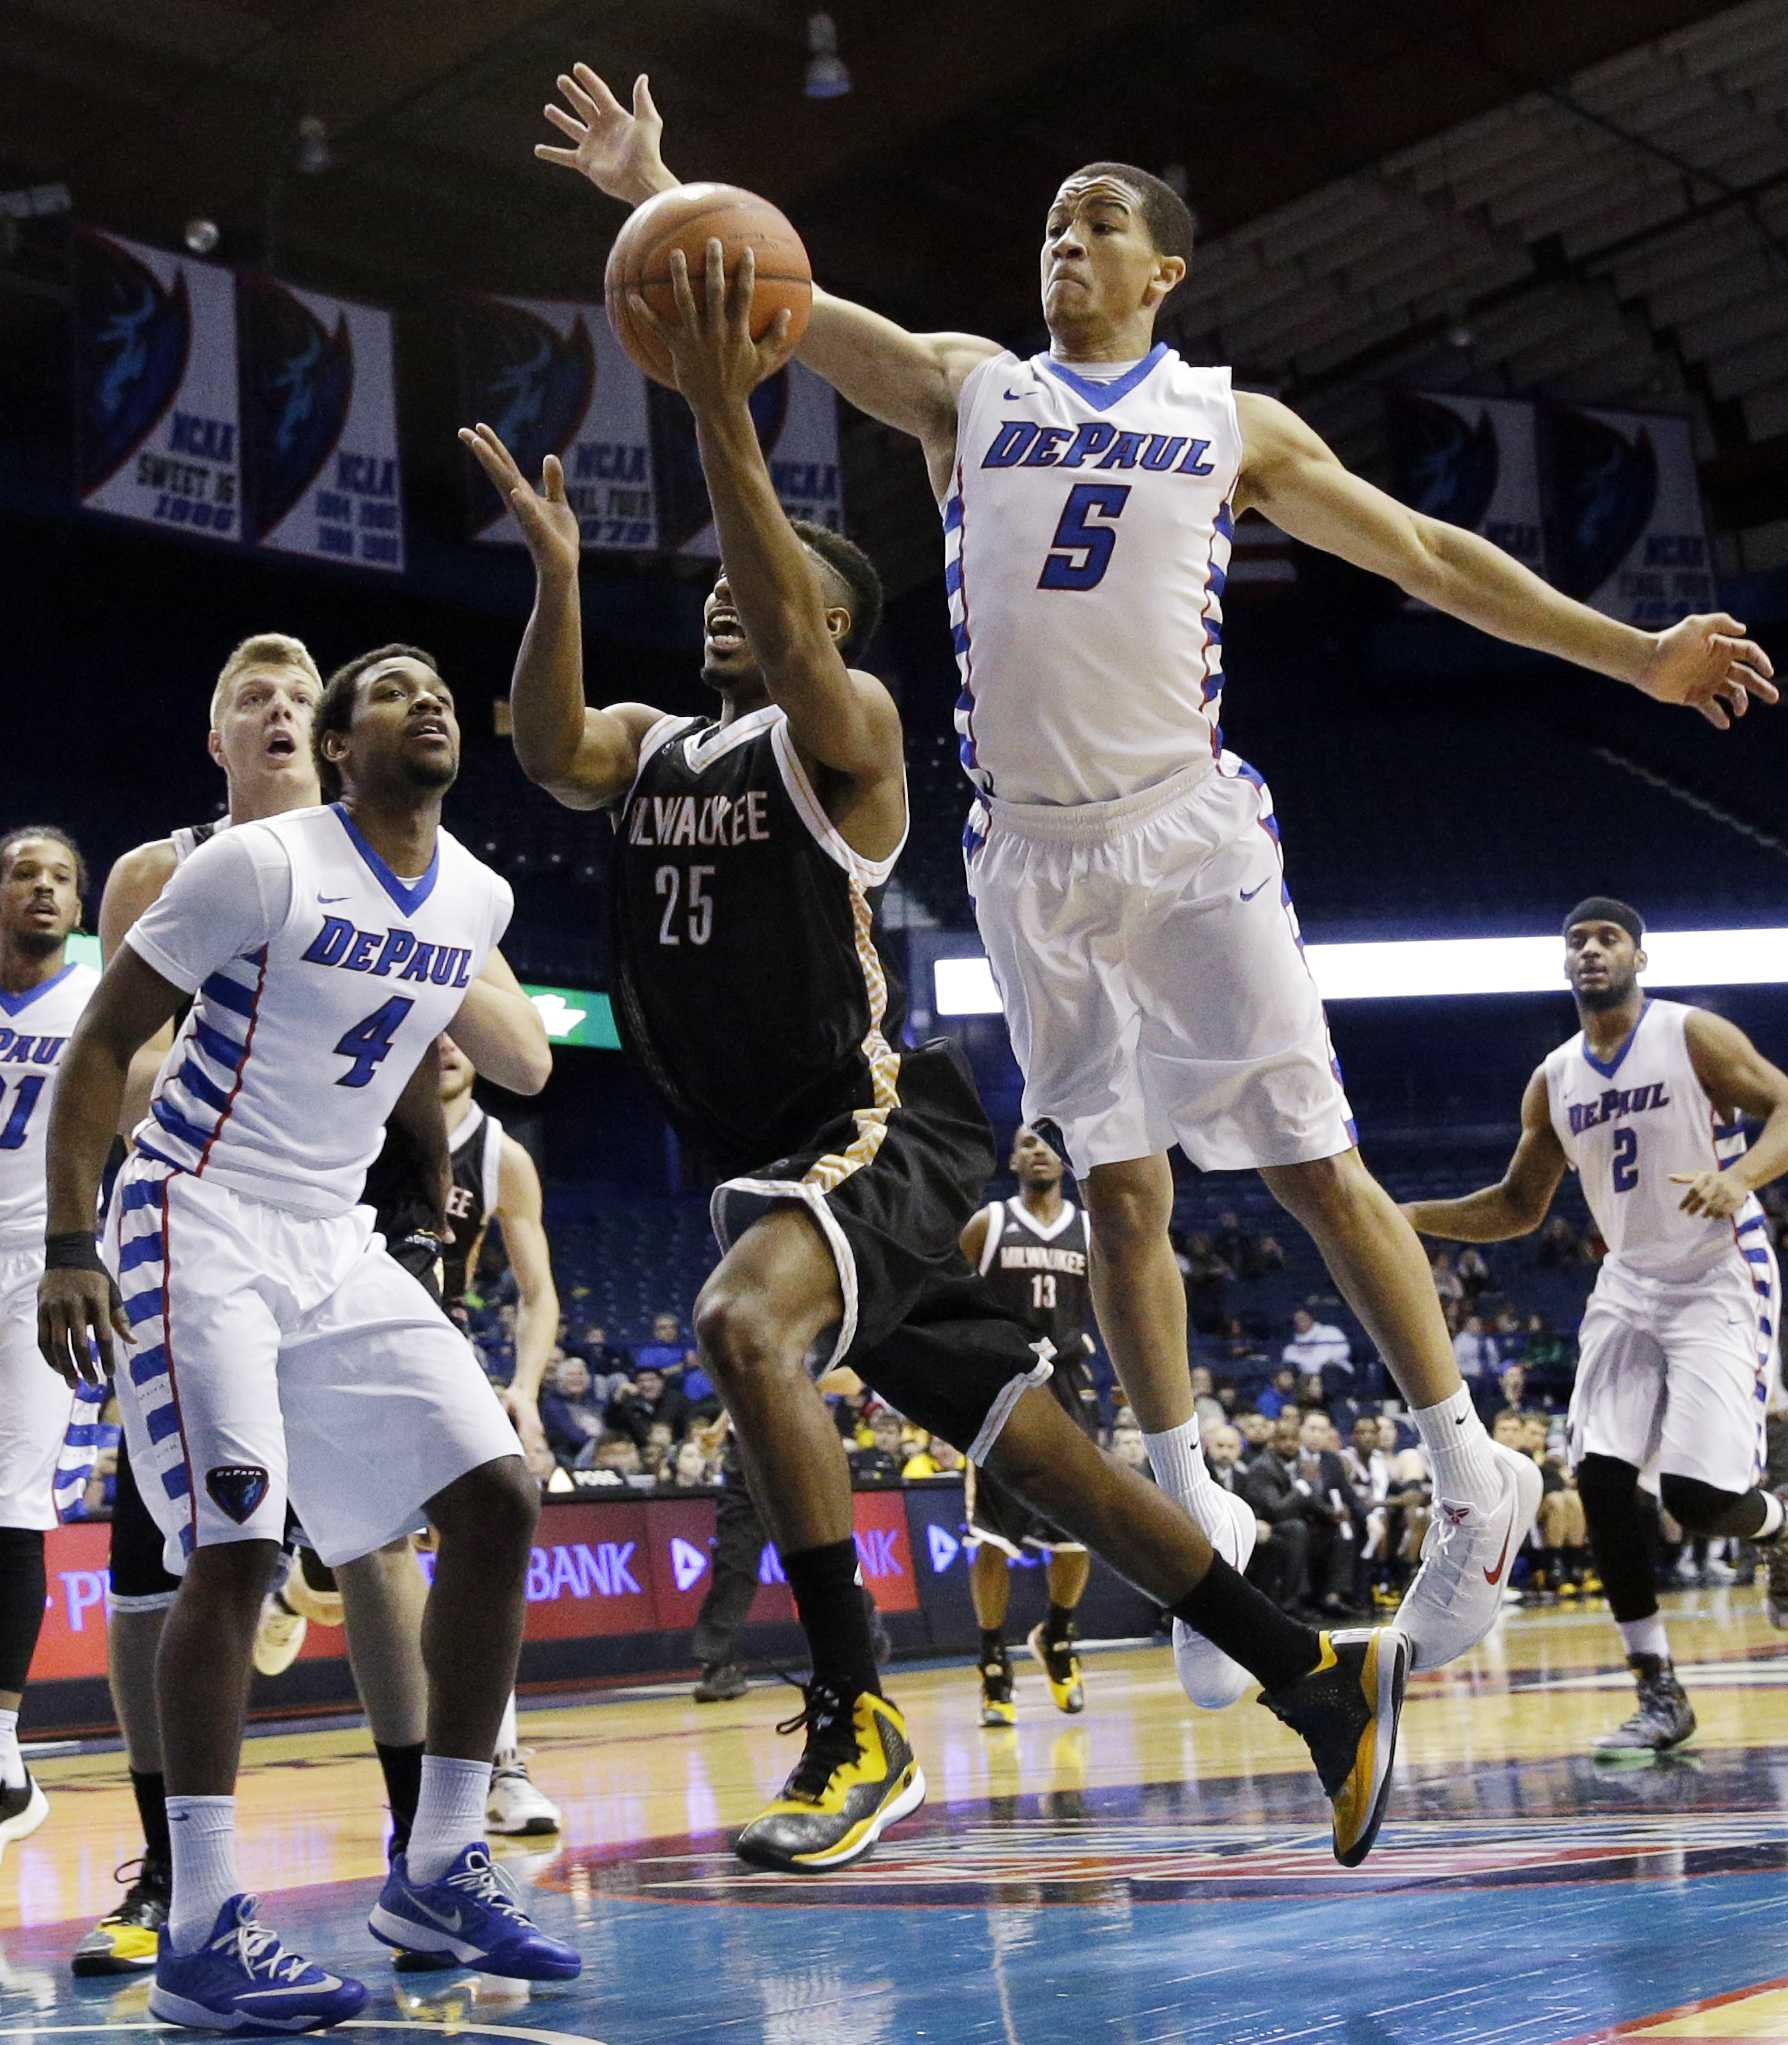 depaul basketball - photo #4